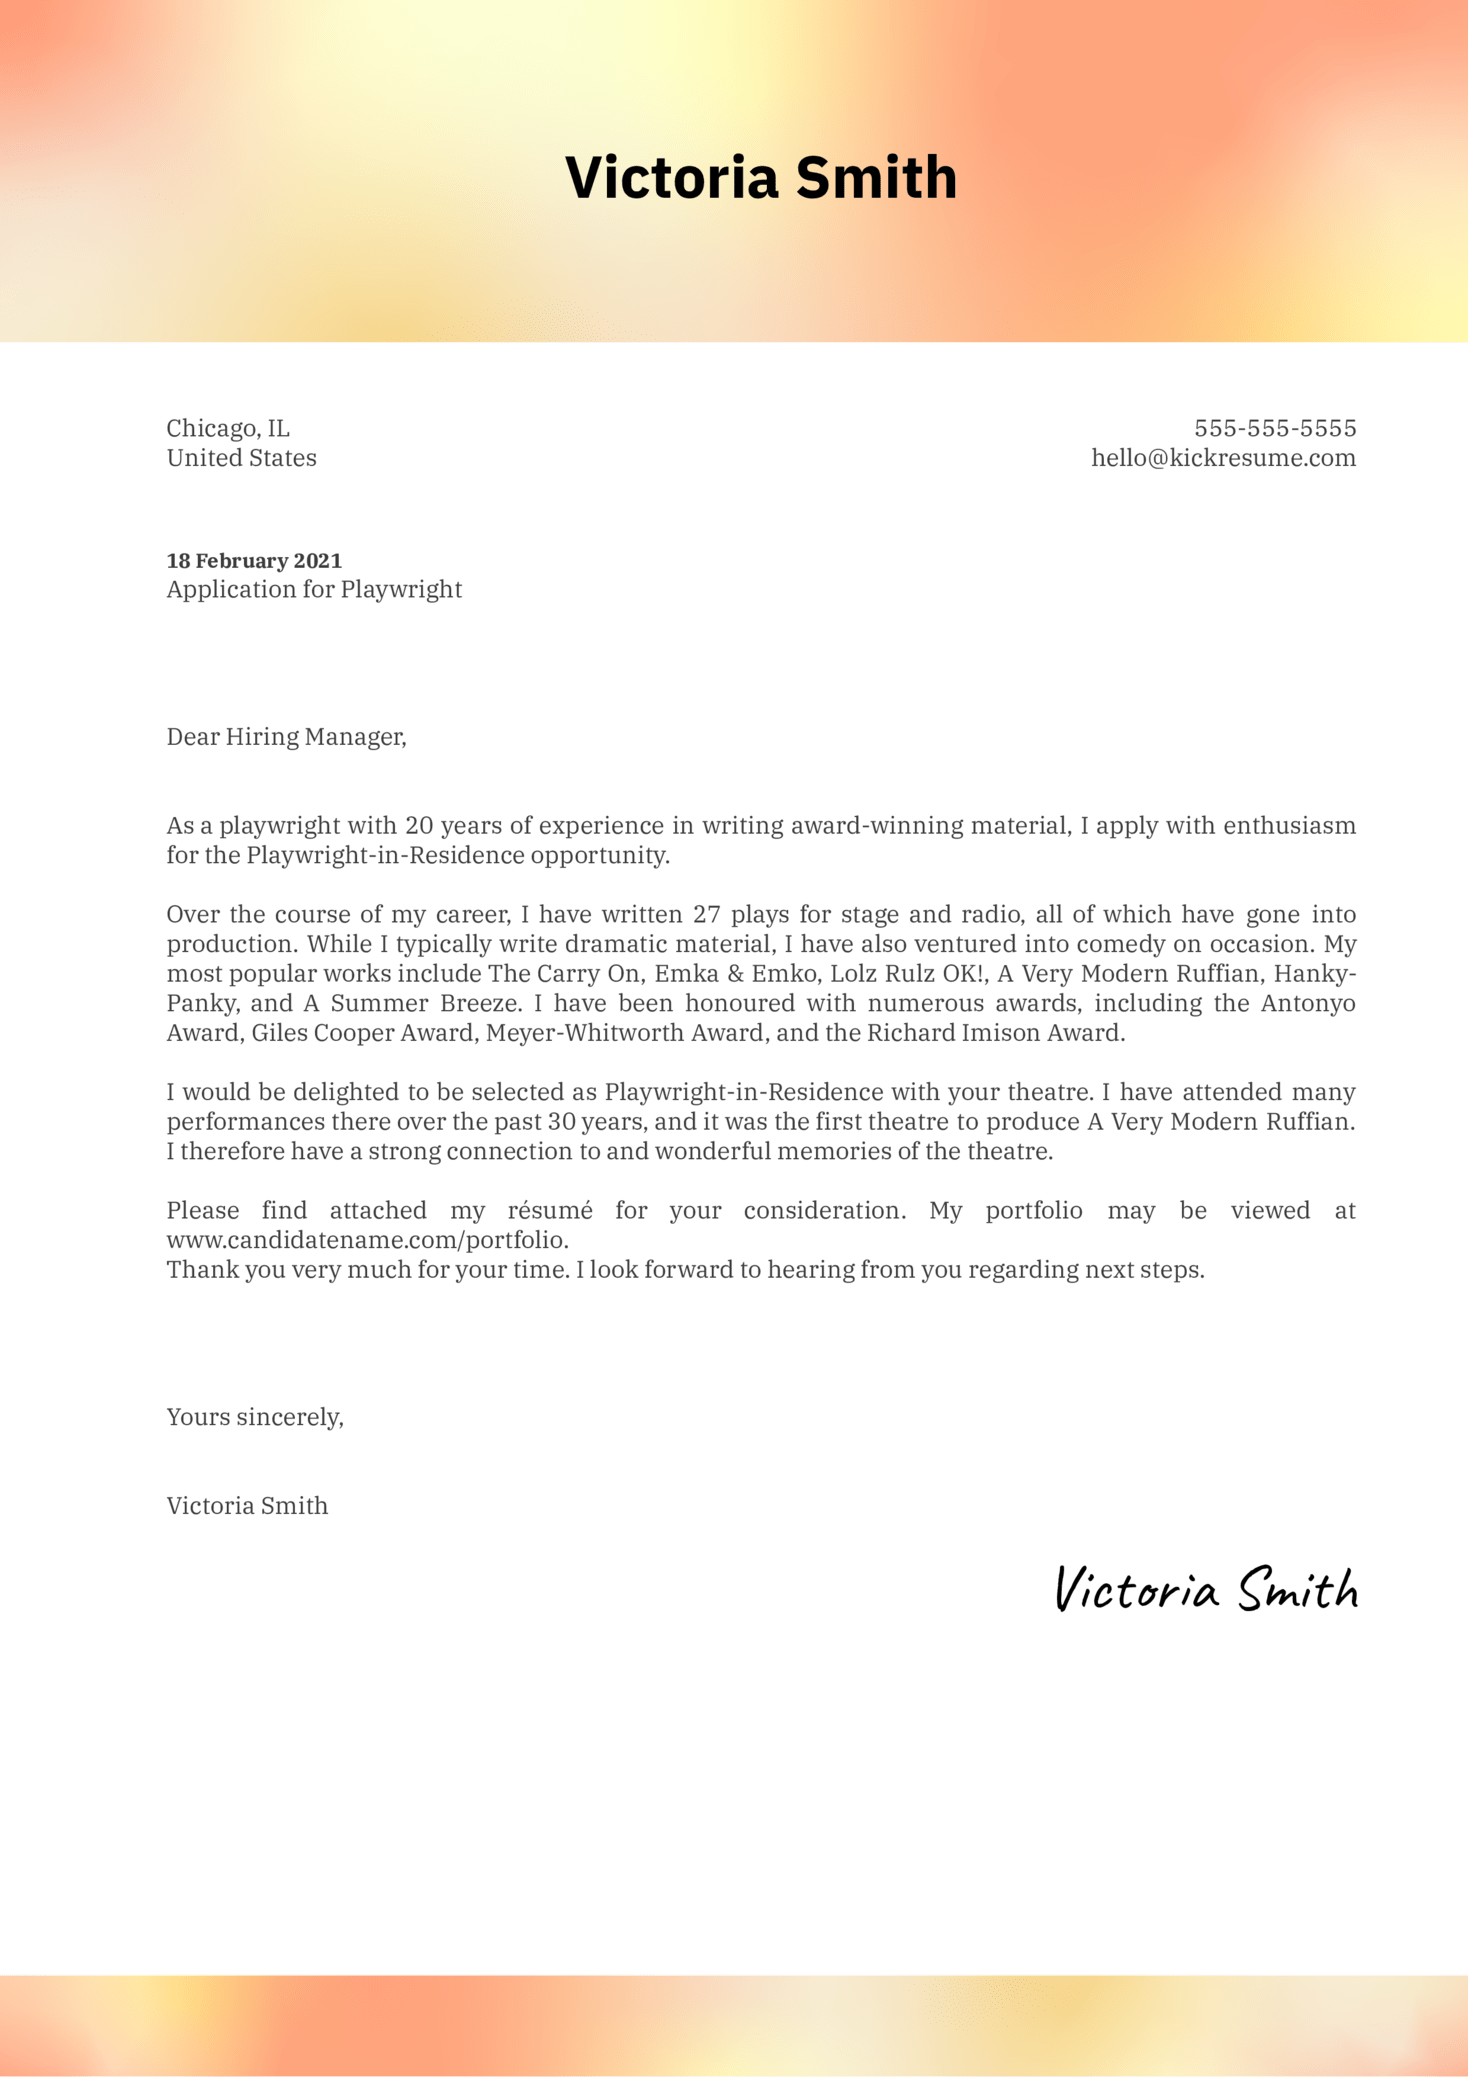 Playwright Cover Letter Sample